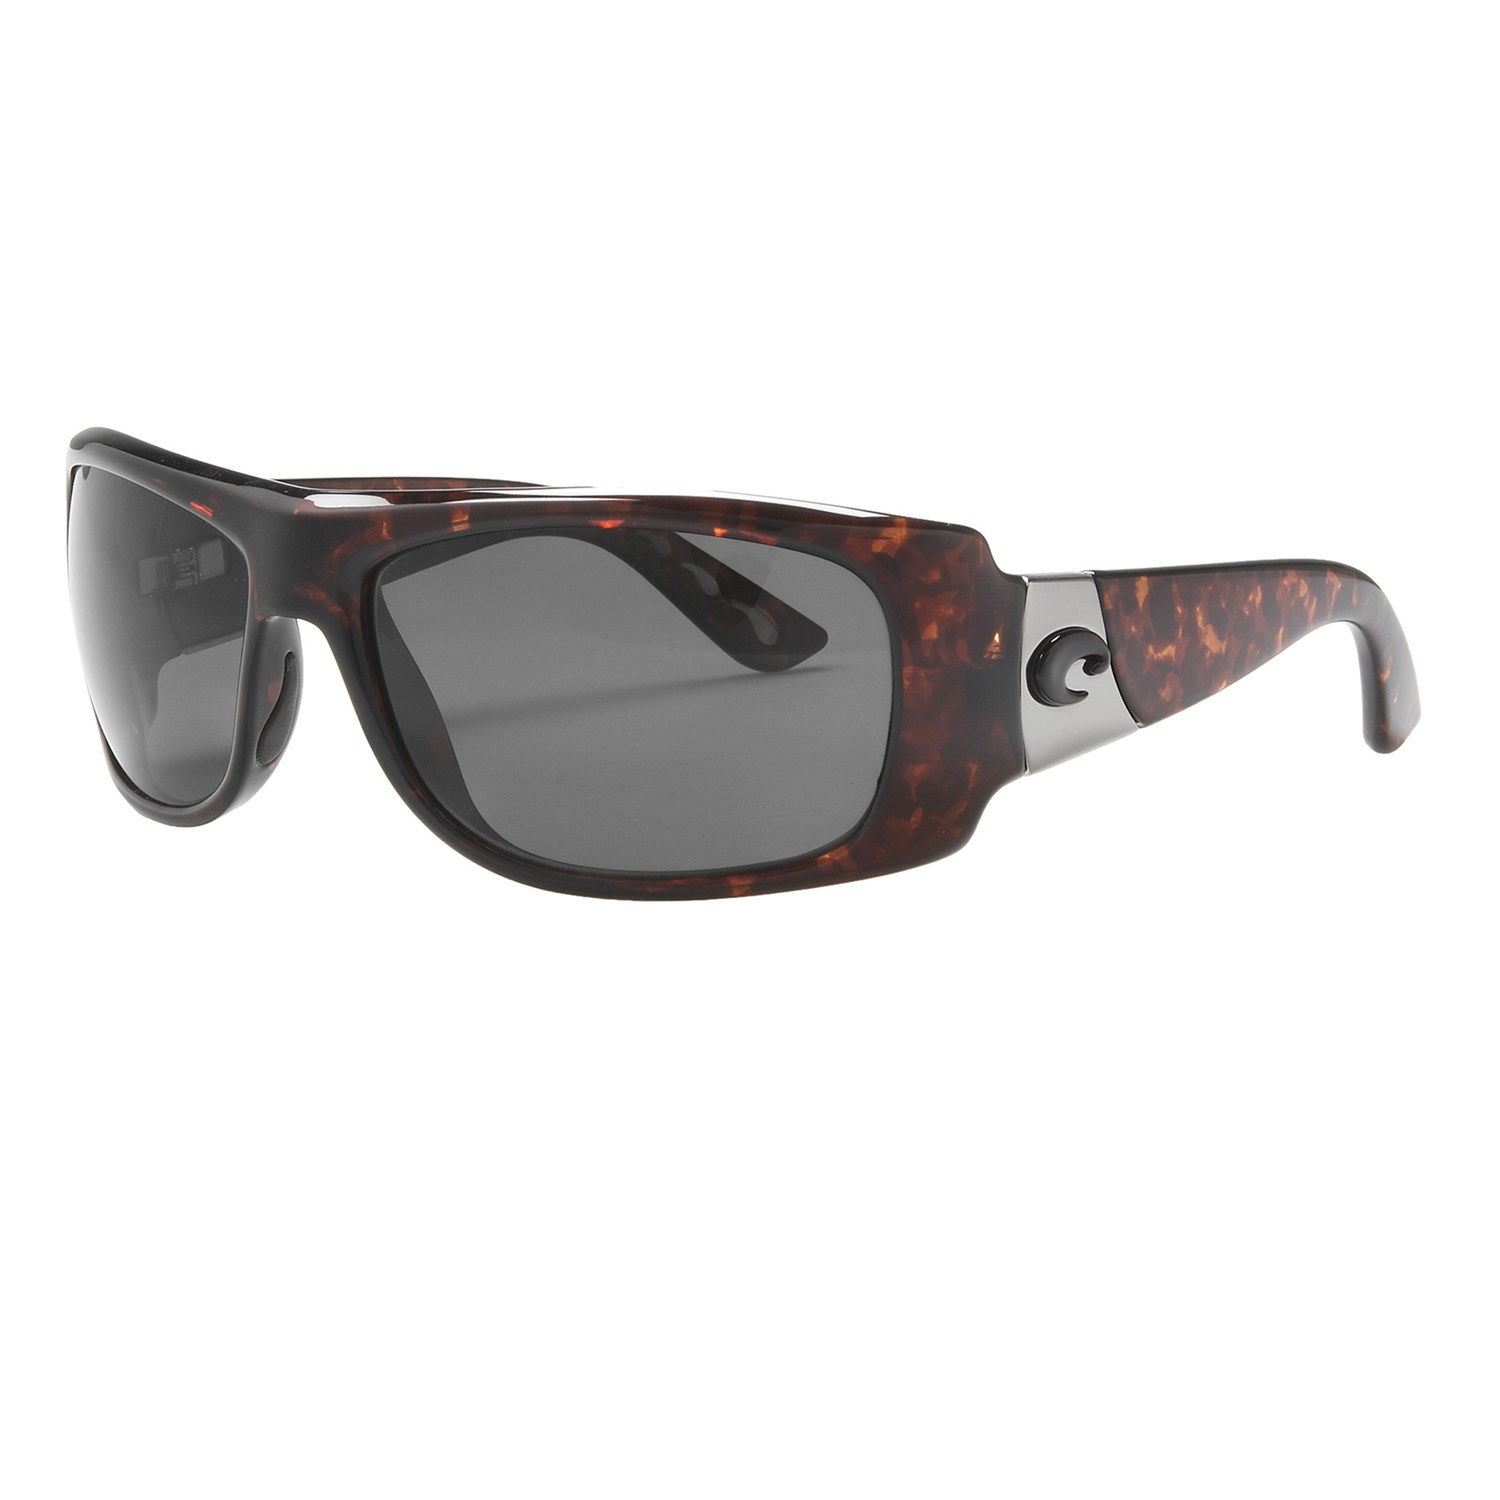 costa-del-mar-bonita-sunglasses-polarized-in-tortoise-grey-cr-39~p~5575t_05~1500